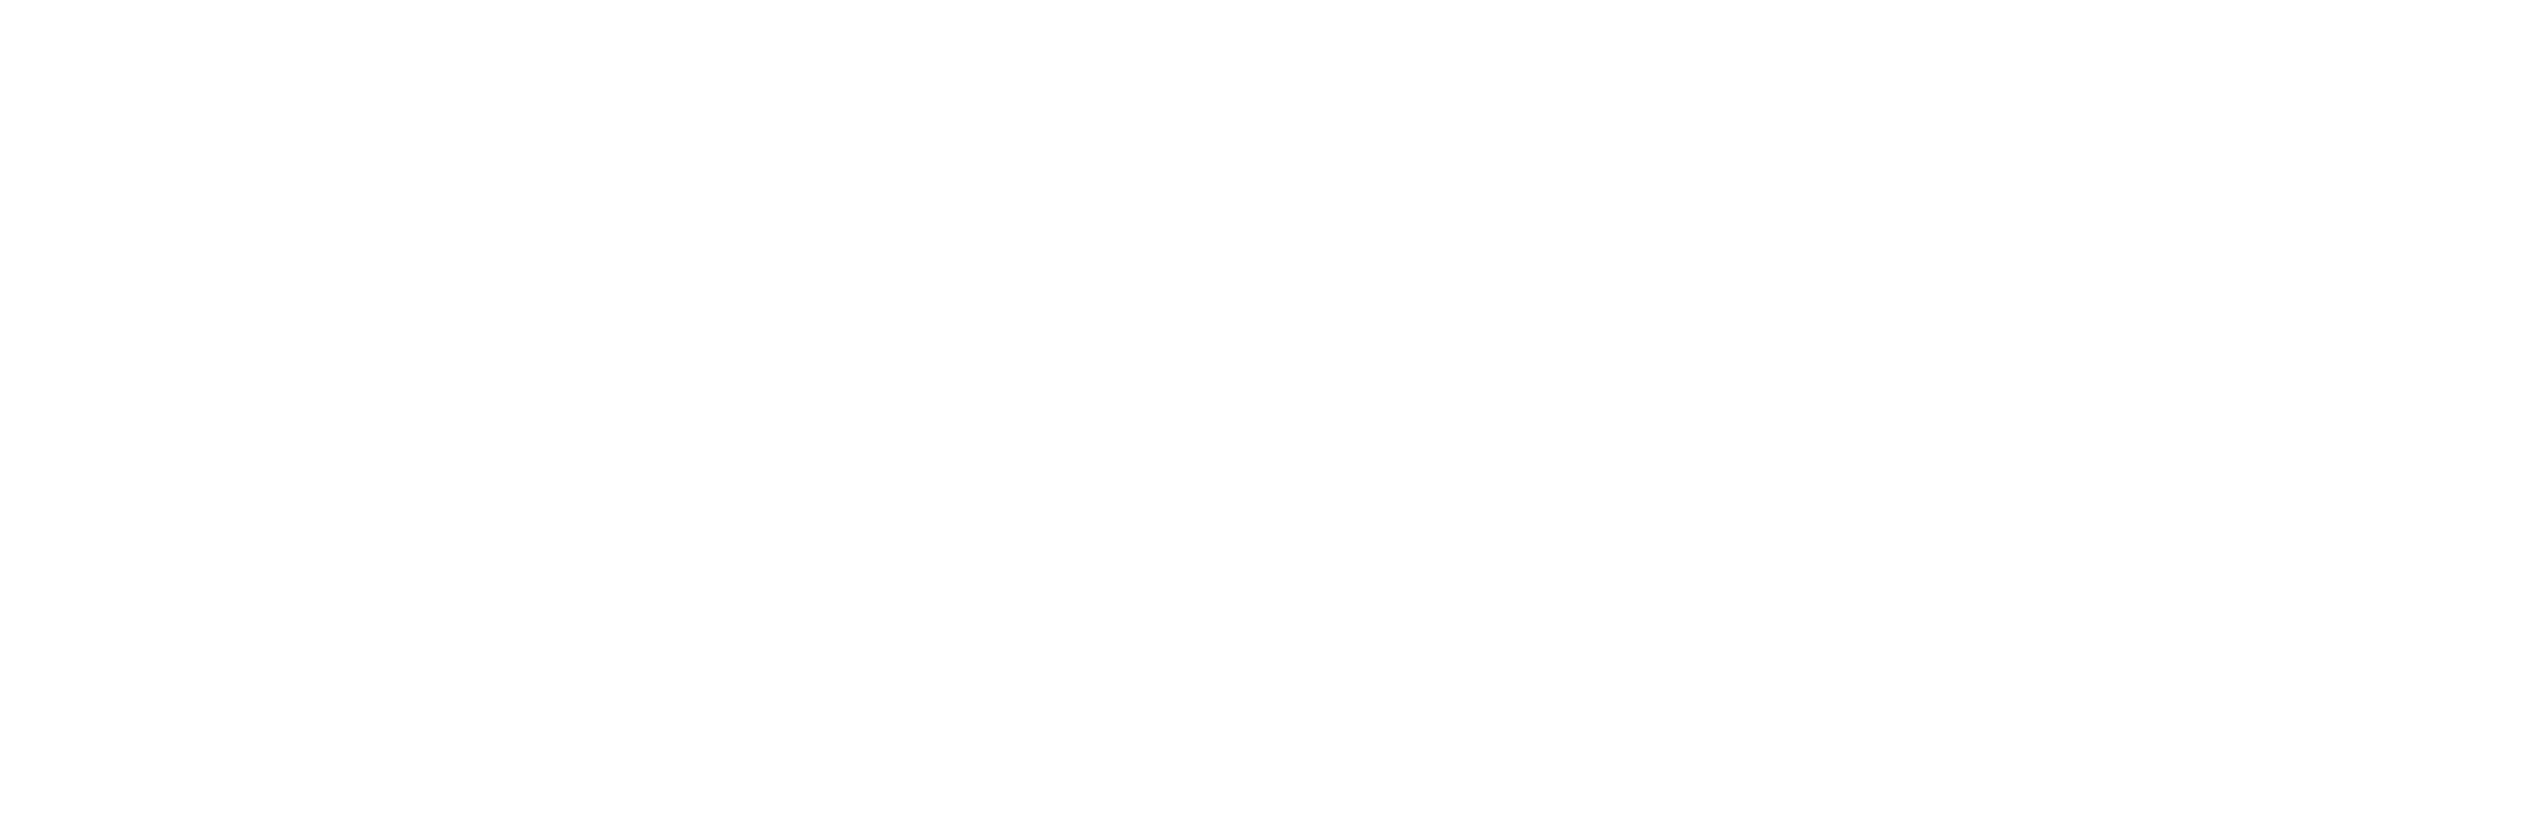 EFCA Foundation